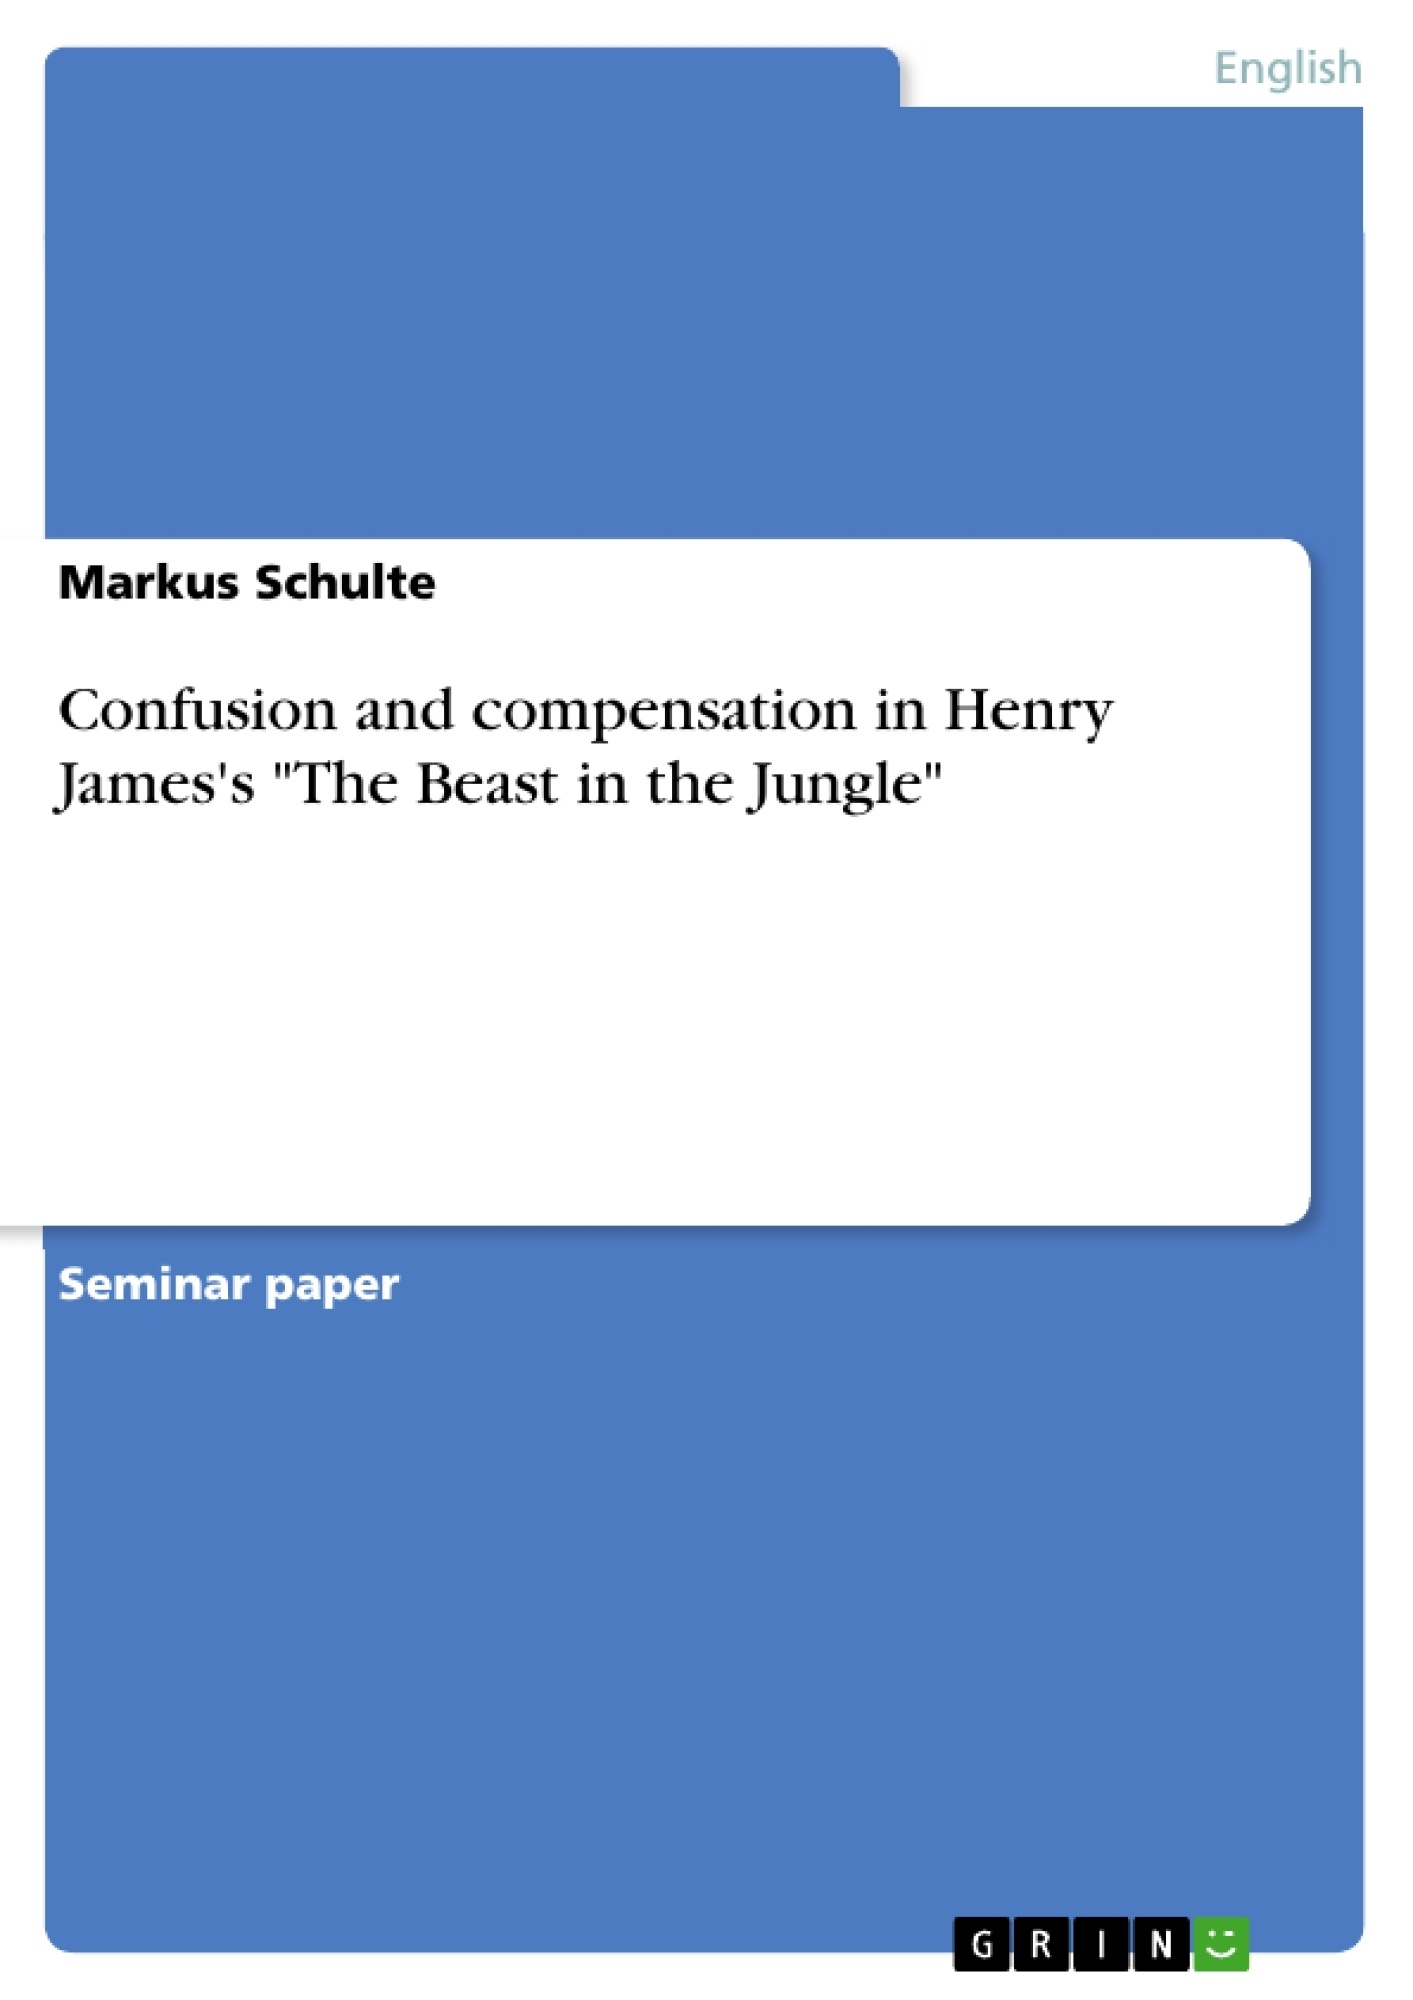 confusion and compensation in henry james s the beast in the confusion and compensation in henry james s the beast in the jungle publish your master s thesis bachelor s thesis essay or term paper